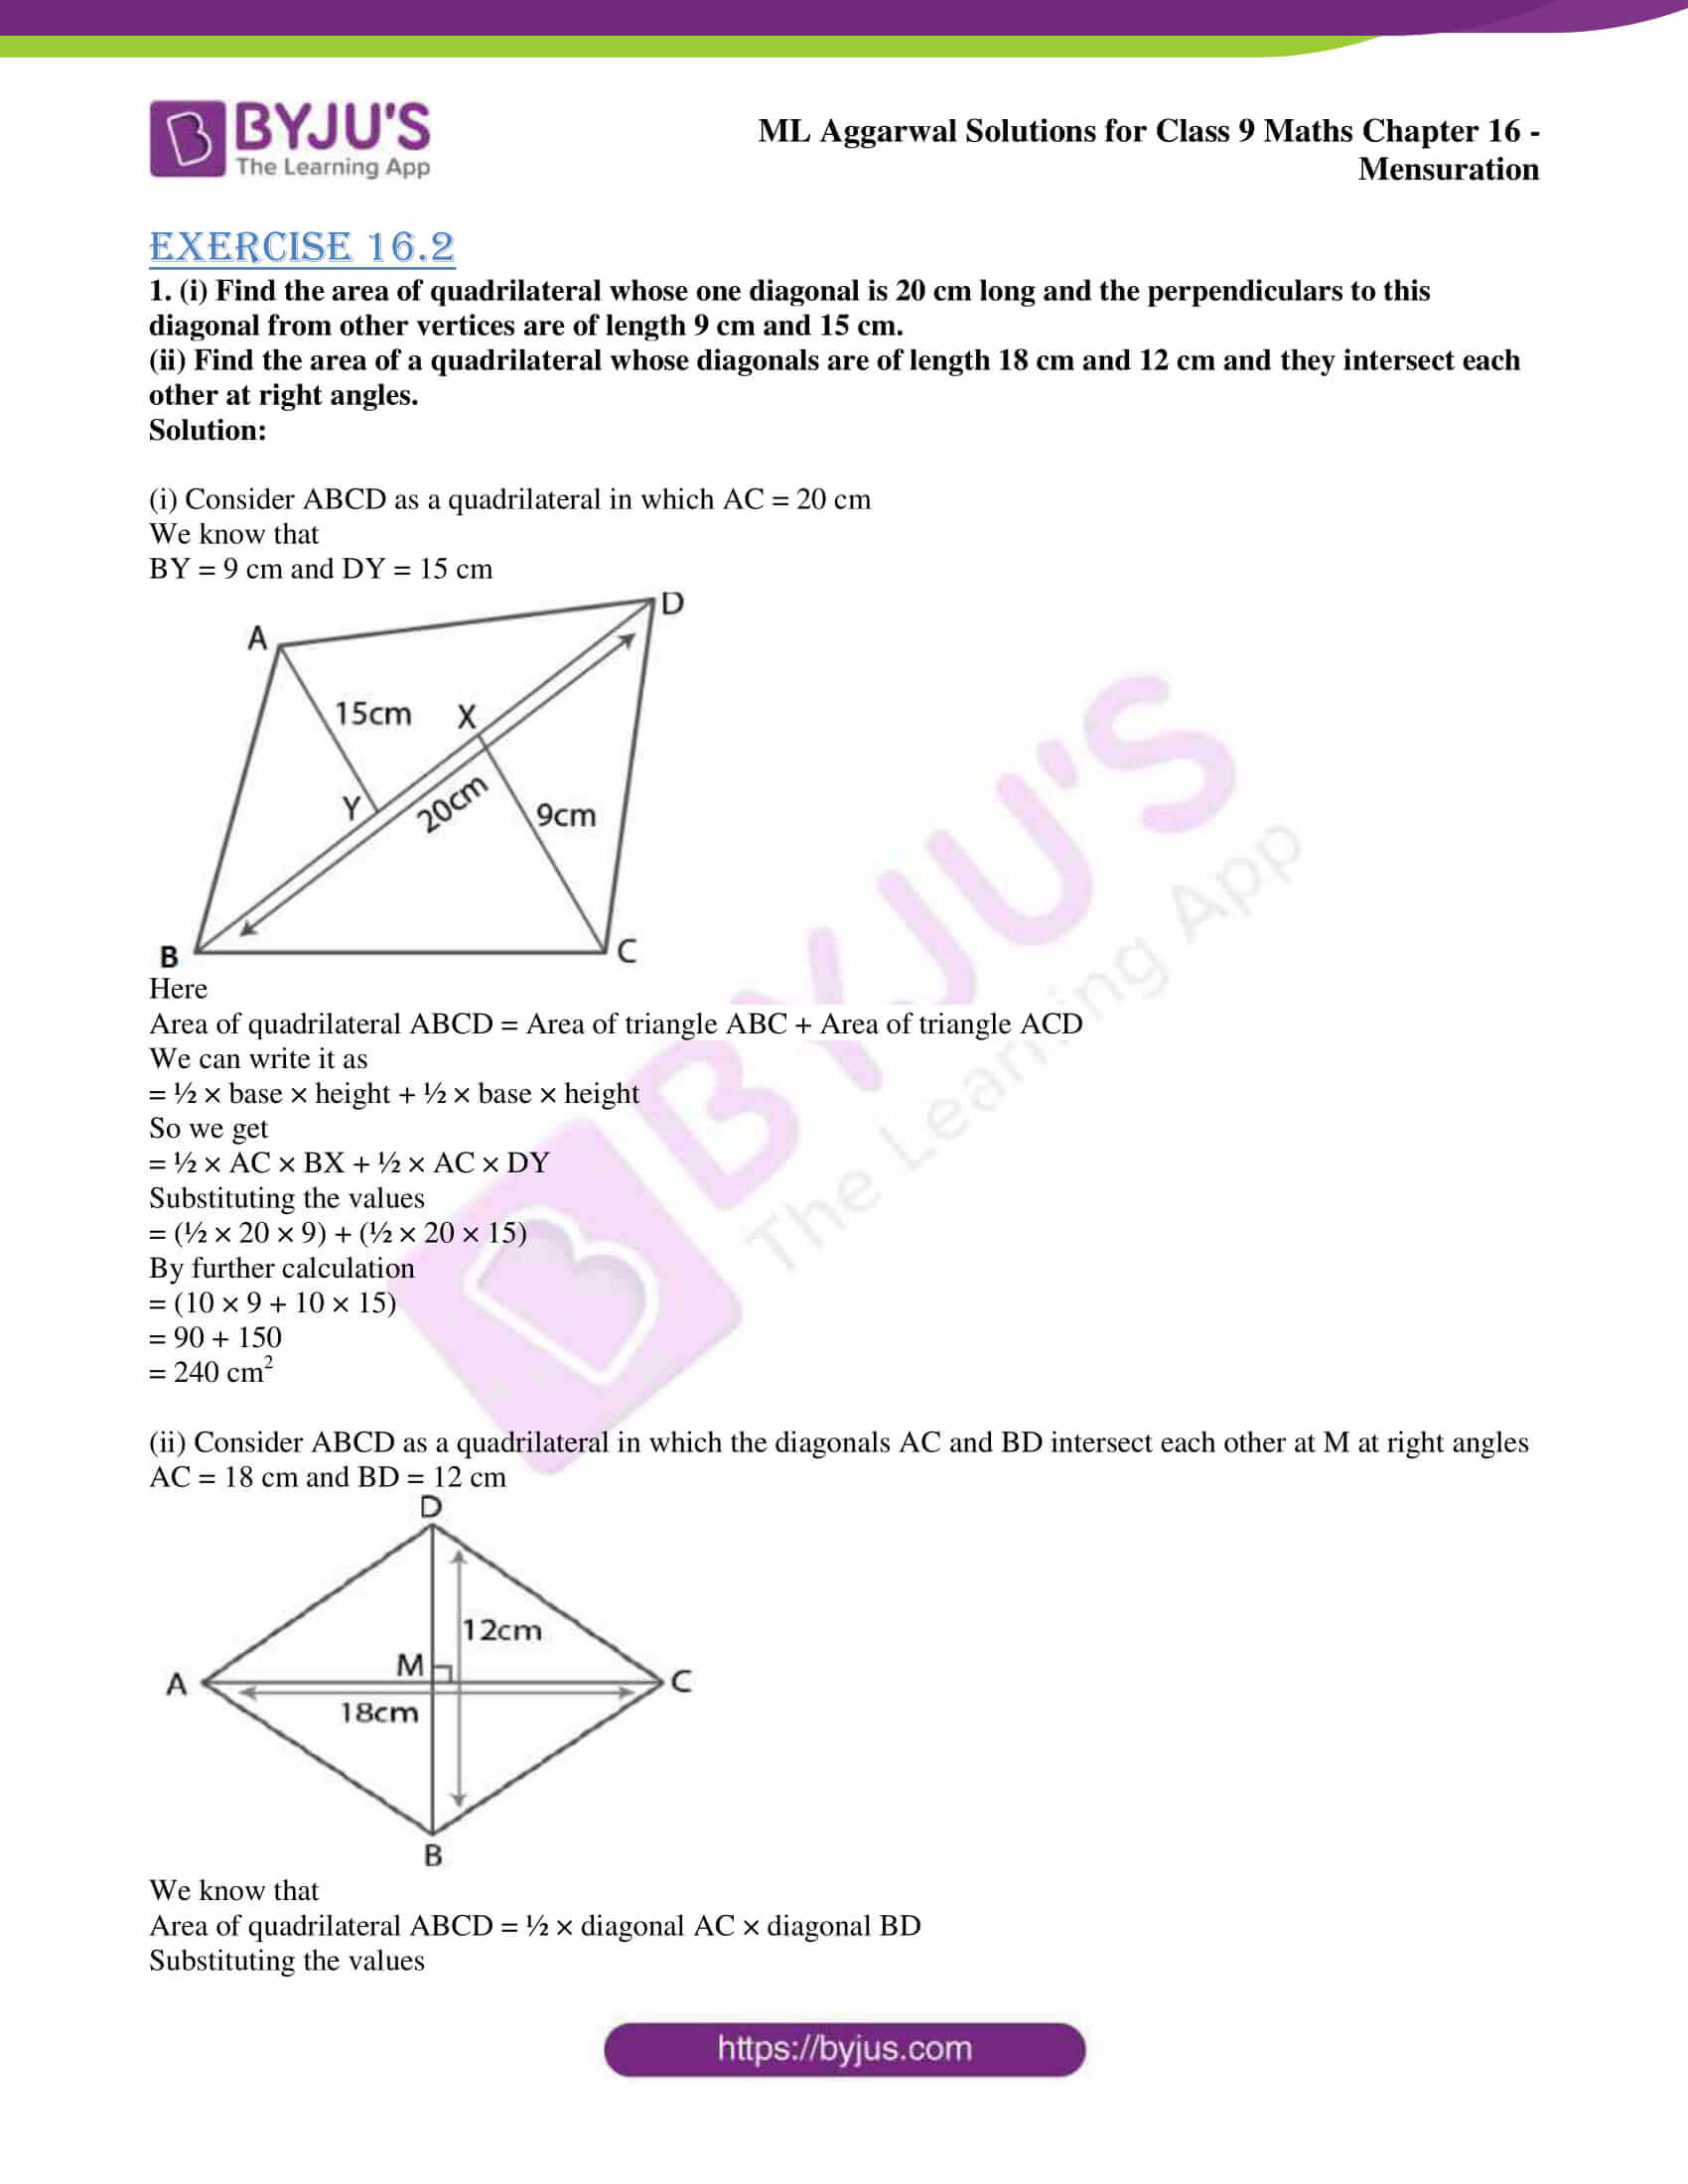 ml aggarwal solutions for class 9 maths chapter 16 023